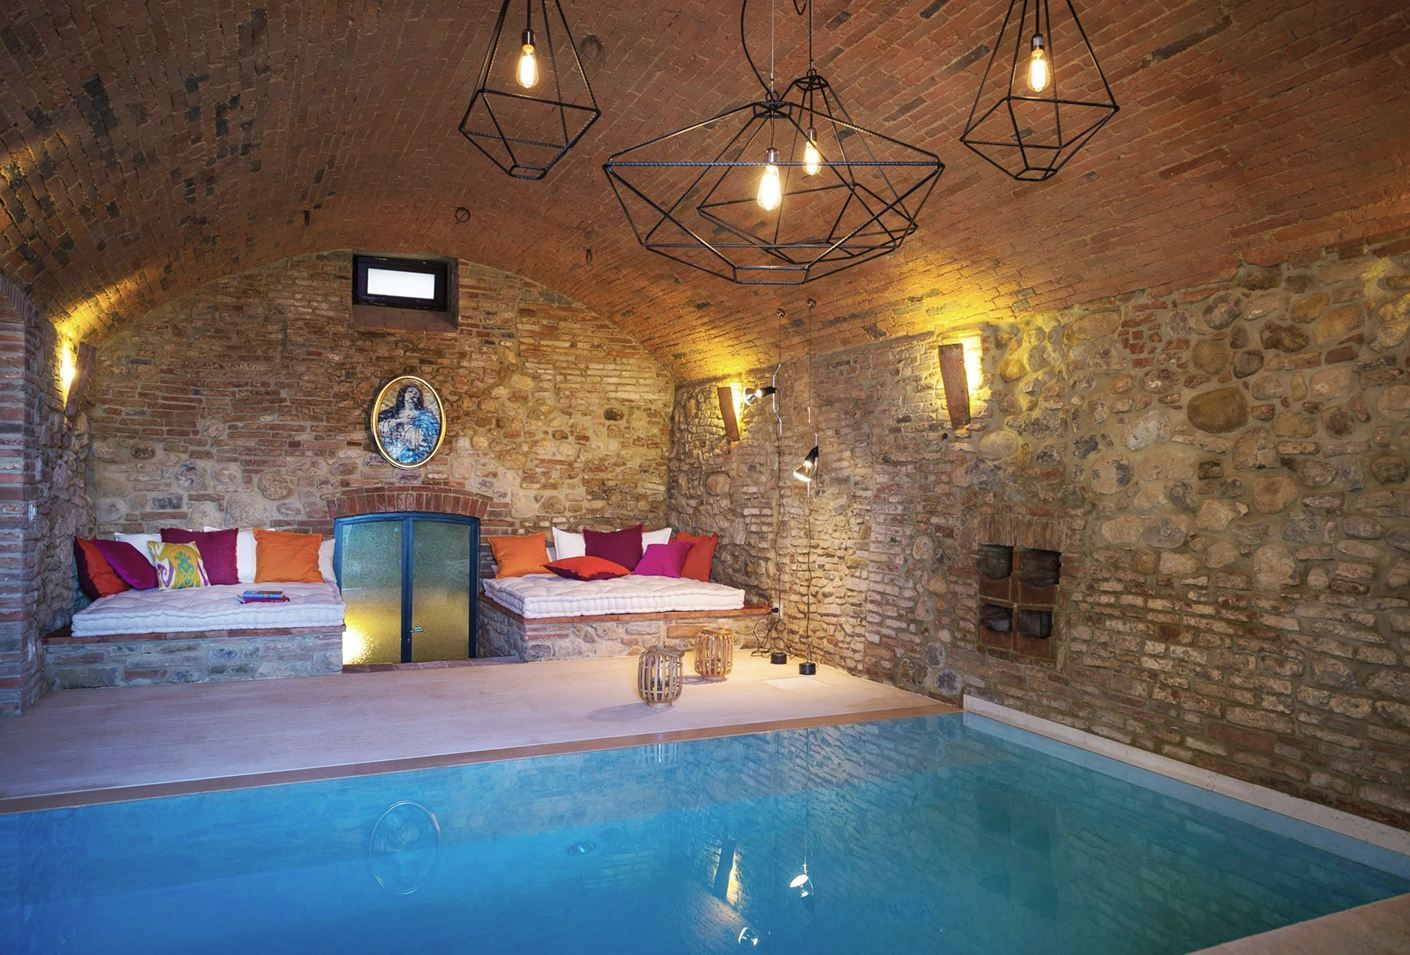 The mazzini 31 hotel in umbria overlooking the coutryside for Hotels in orvieto with swimming pool